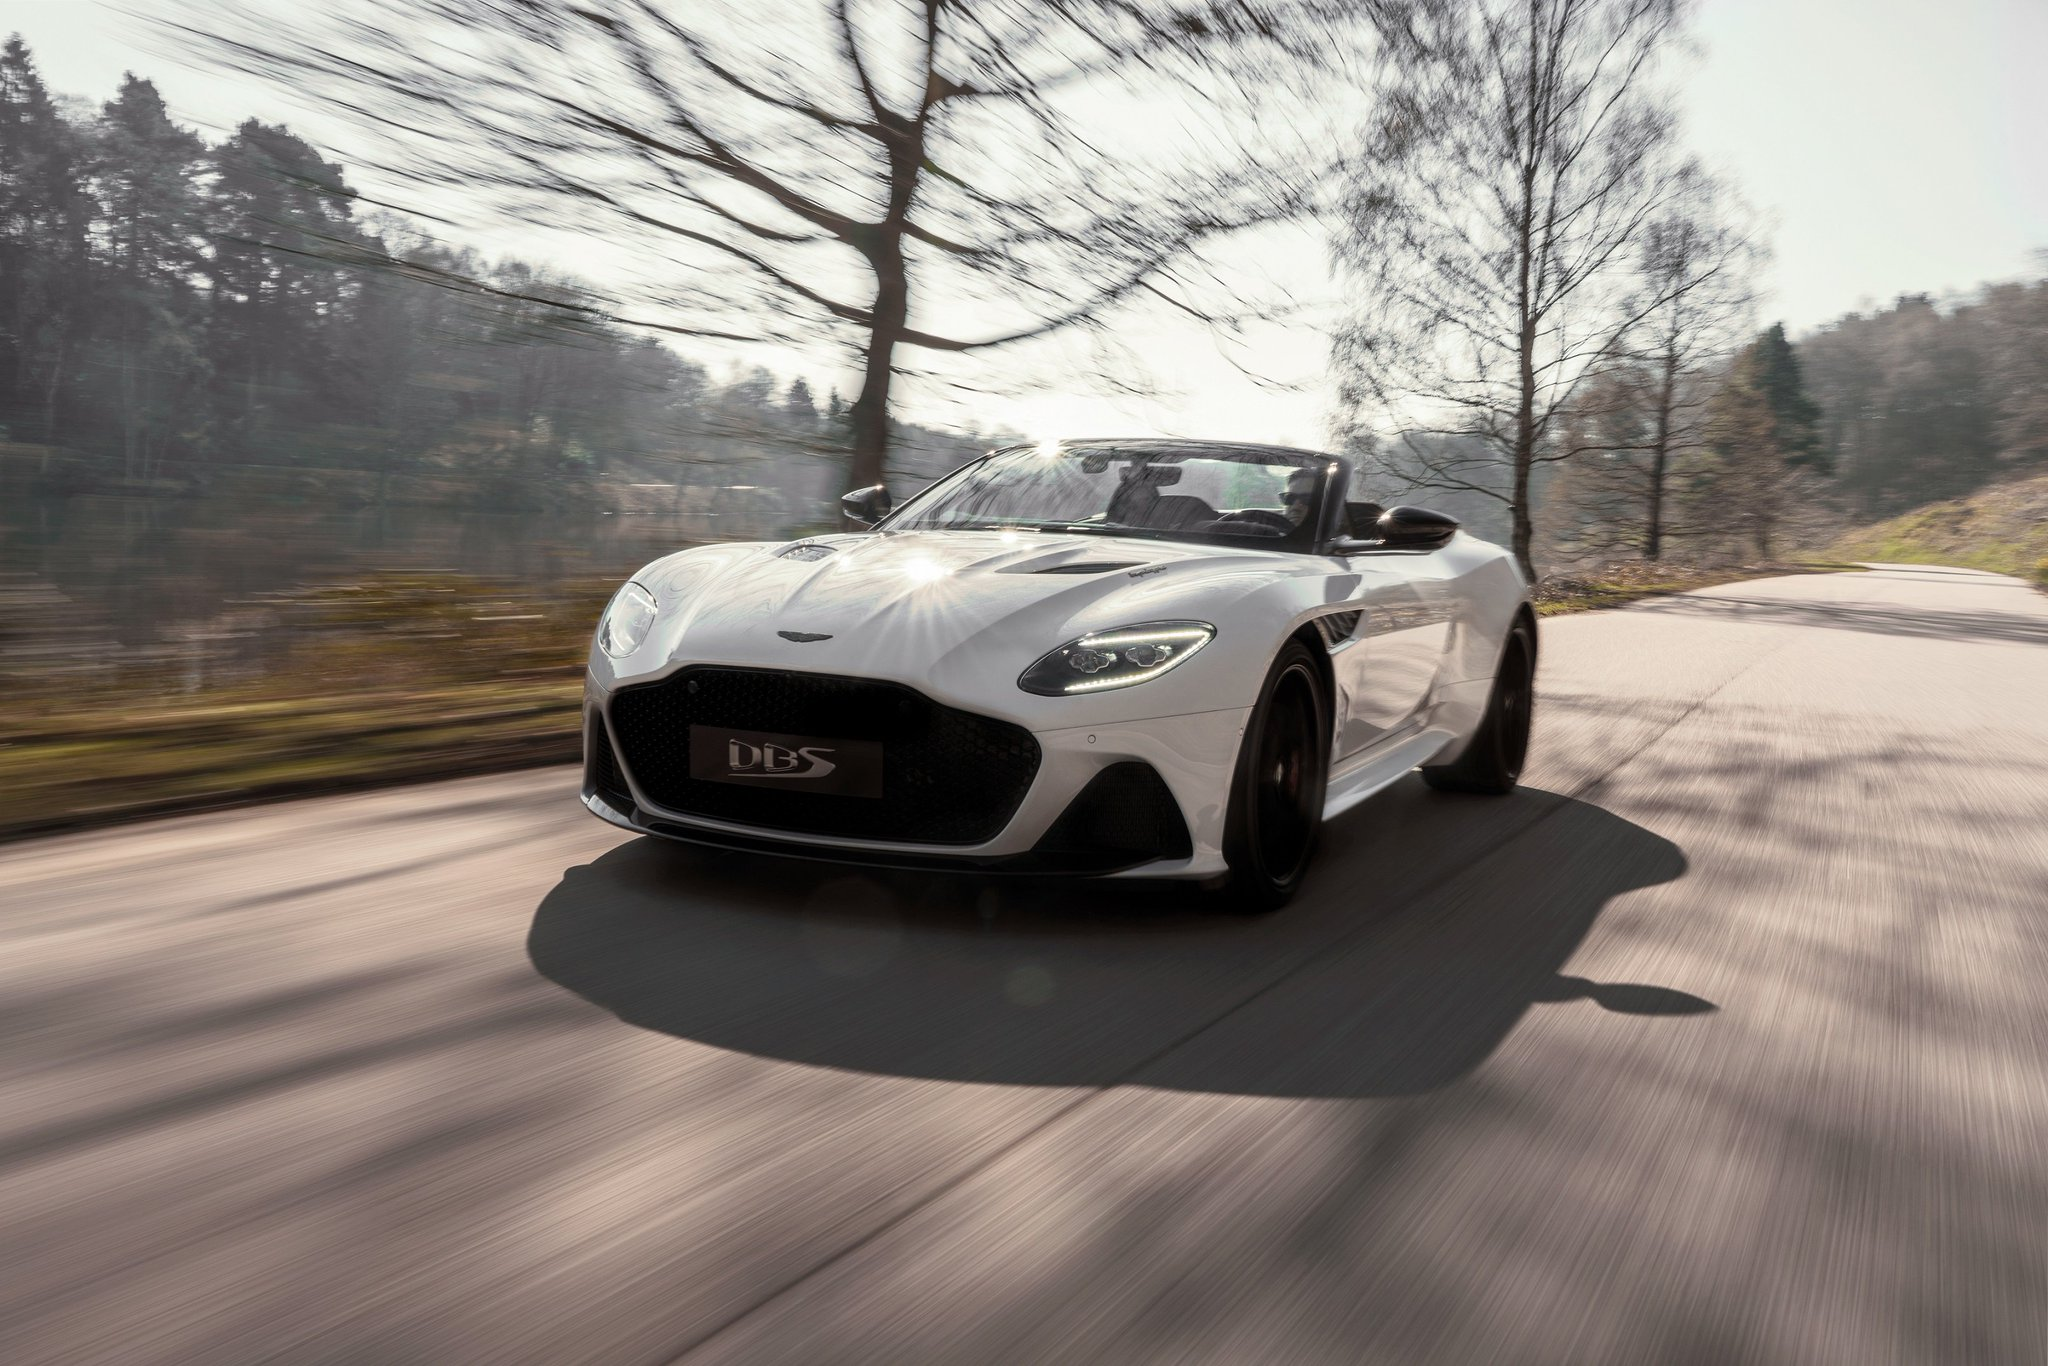 Introducing Aston Martin DBS Superleggera Volante, our fastest and ultimate open-top driving experience. All the evocative talent of DBS Superleggera, blended with class-leading convertible technology.  #AstonMartin #DBSSuperleggera #Volante https://t.co/MP0CUnbNTJ